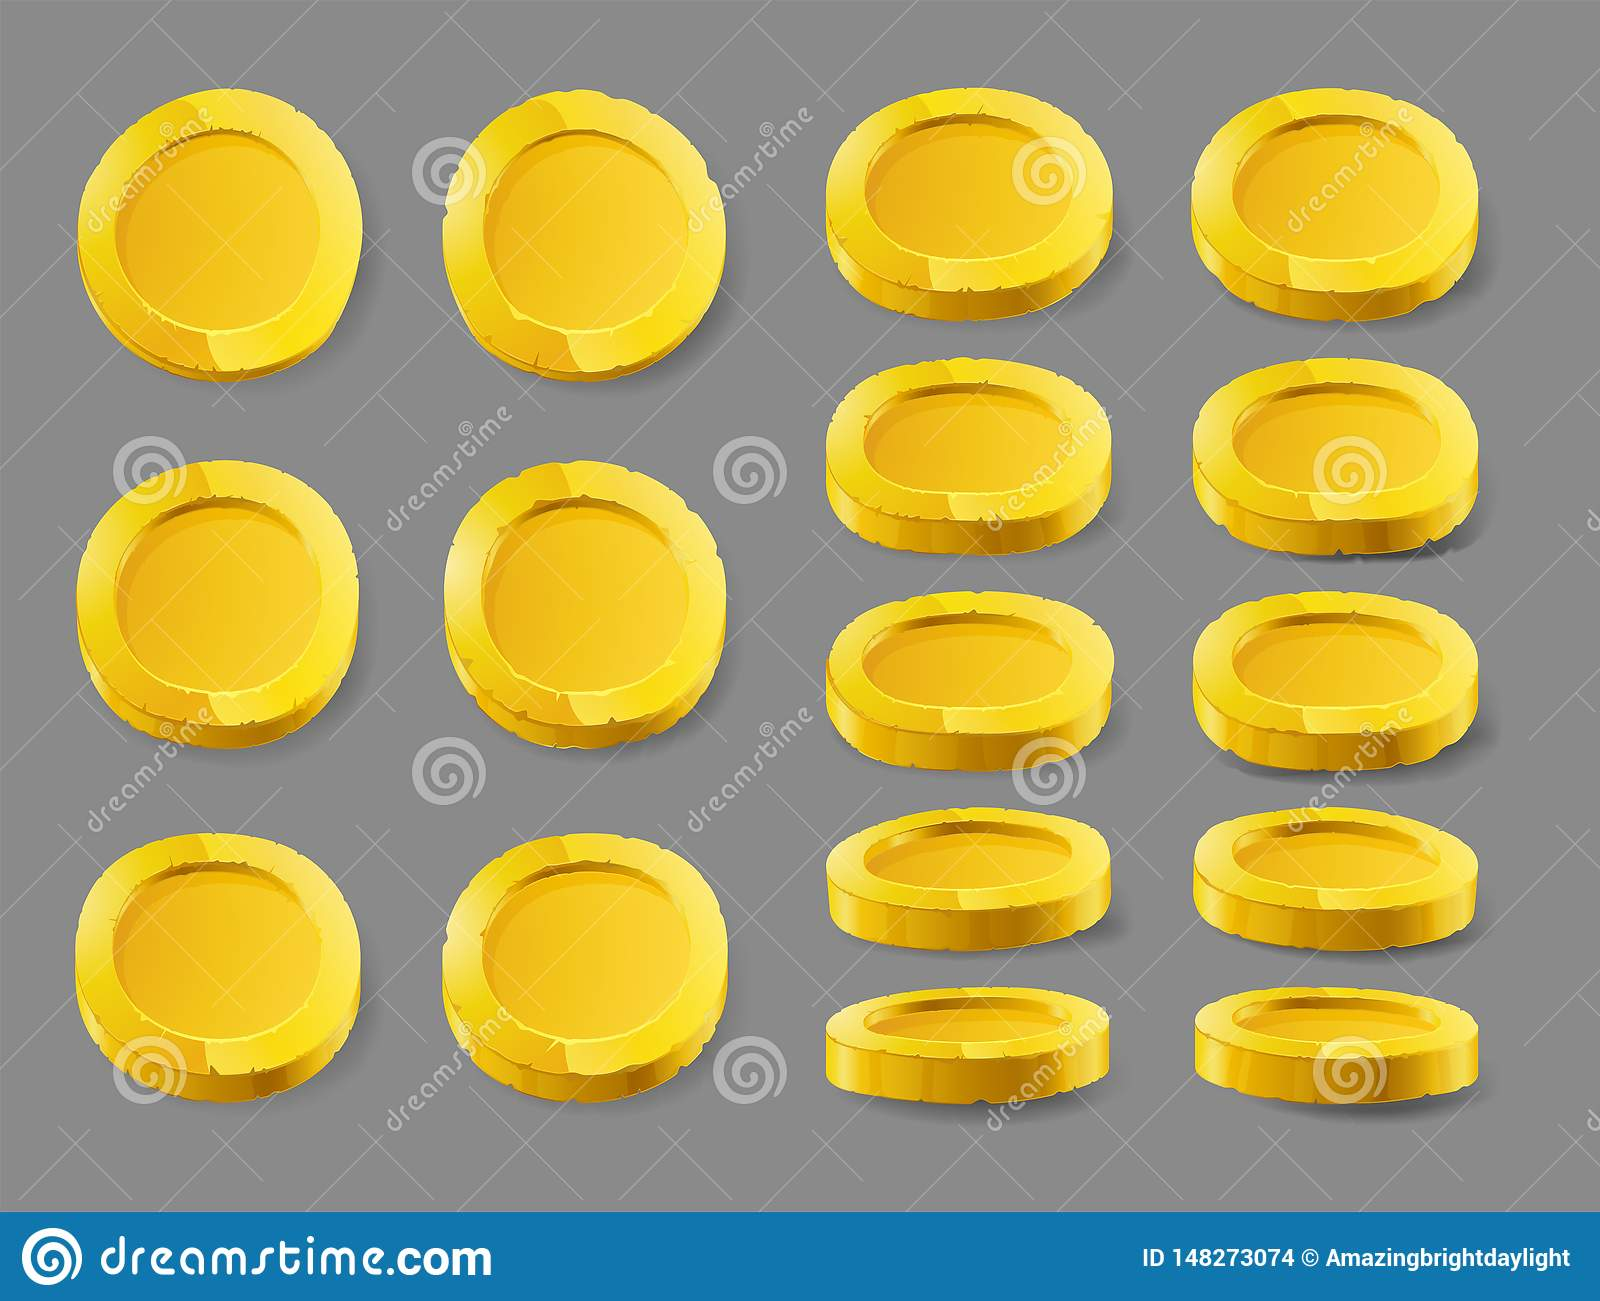 Gold coin. Gold coin isolated on a white background. Gold coin, vector illustration.